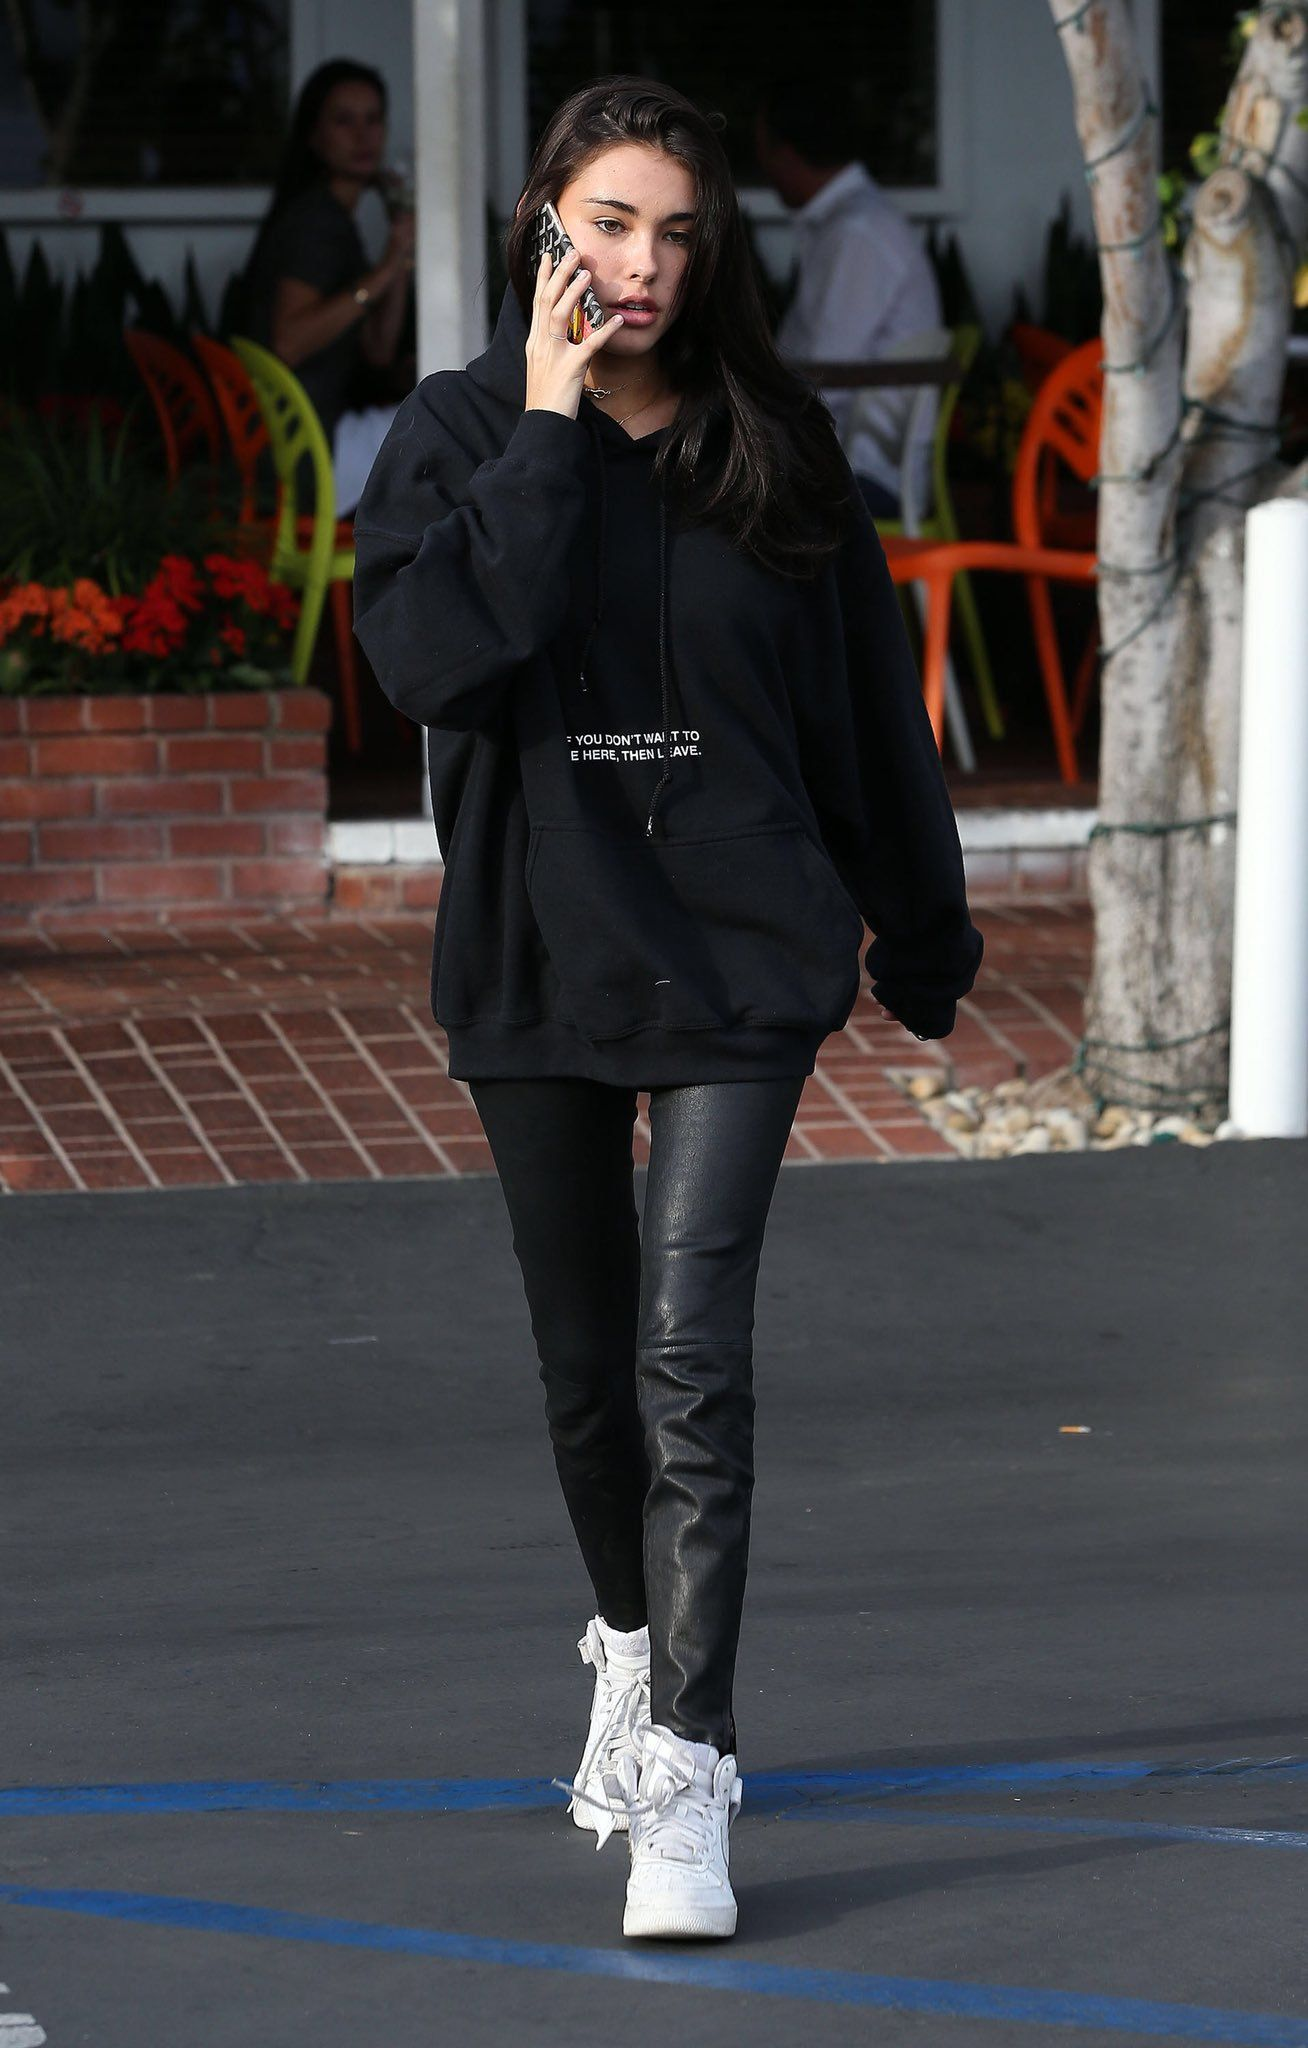 Madison Beer Candids On Twitter Celebrity Style Casual Womens Denim Shirt Everyday Outfits [ 2048 x 1308 Pixel ]